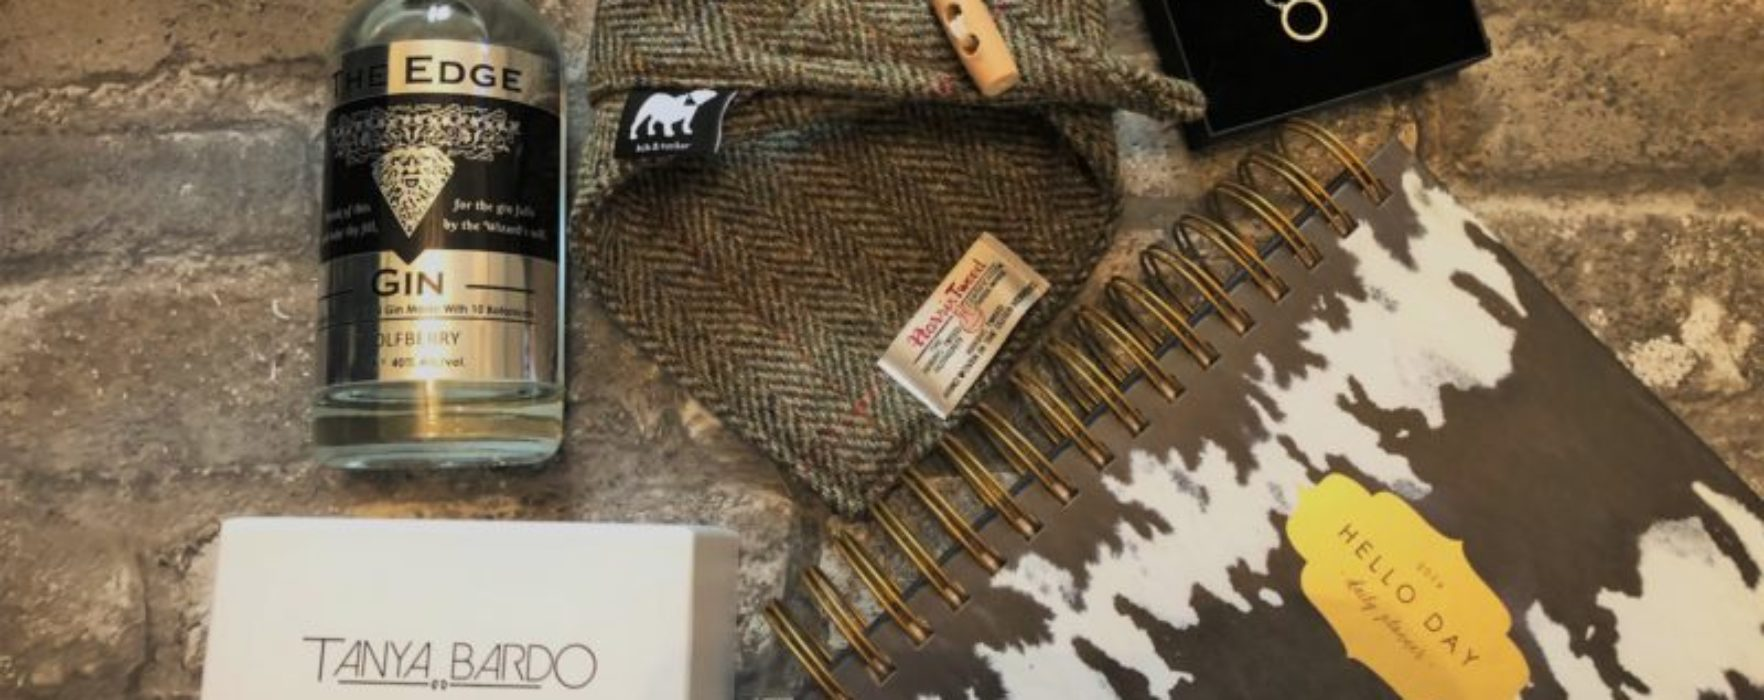 CHESHIRE: VIVA's Top 5 locally sourced Christmas gifts